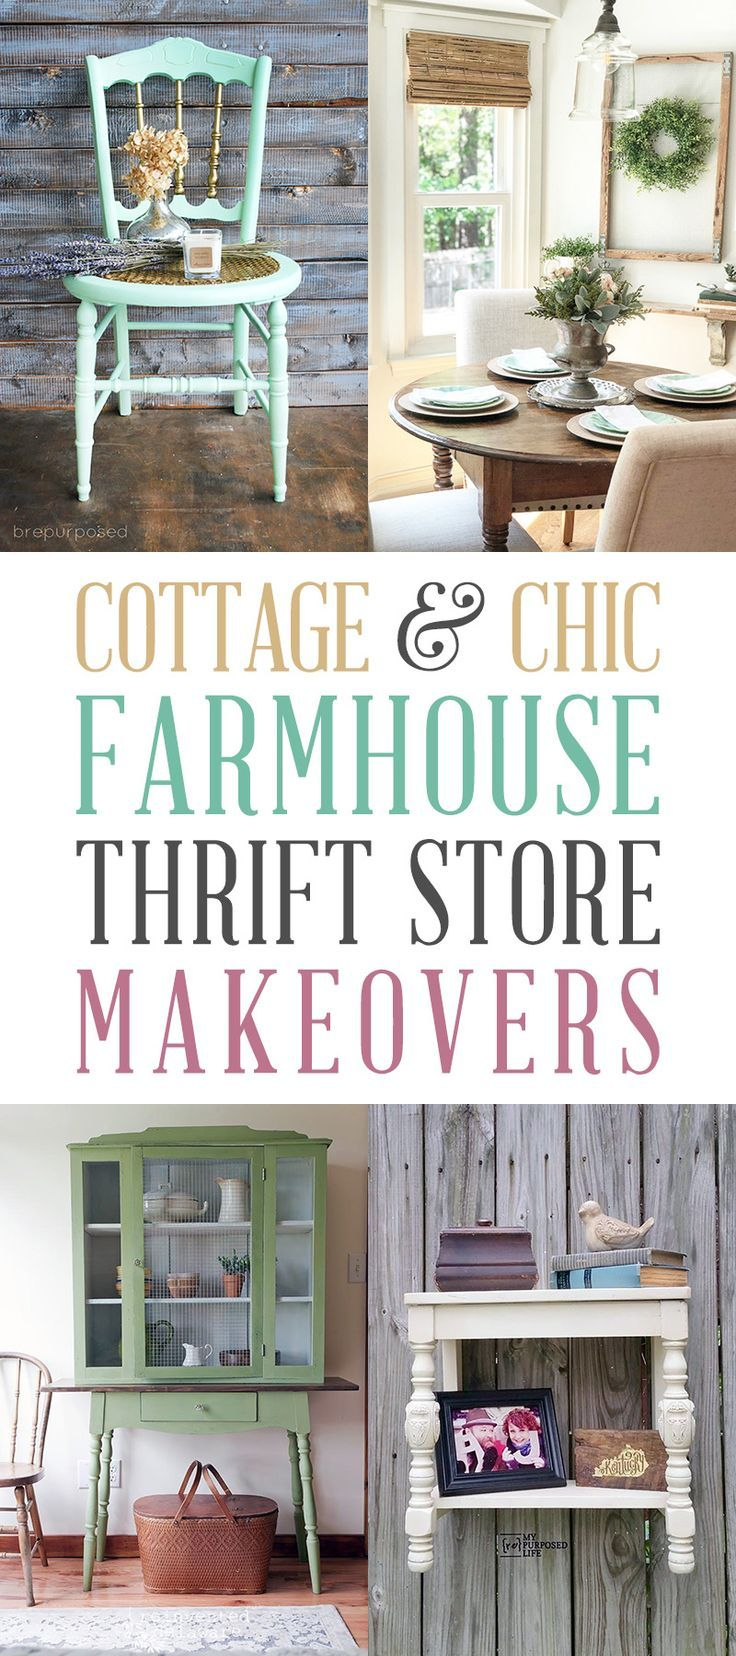 Cottage and Chic Farmhouse Thrift Store Makeovers - #chic #Cottage #Farmhouse #Makeover #Makeovers #store #Thrift #thriftstoreupcycle